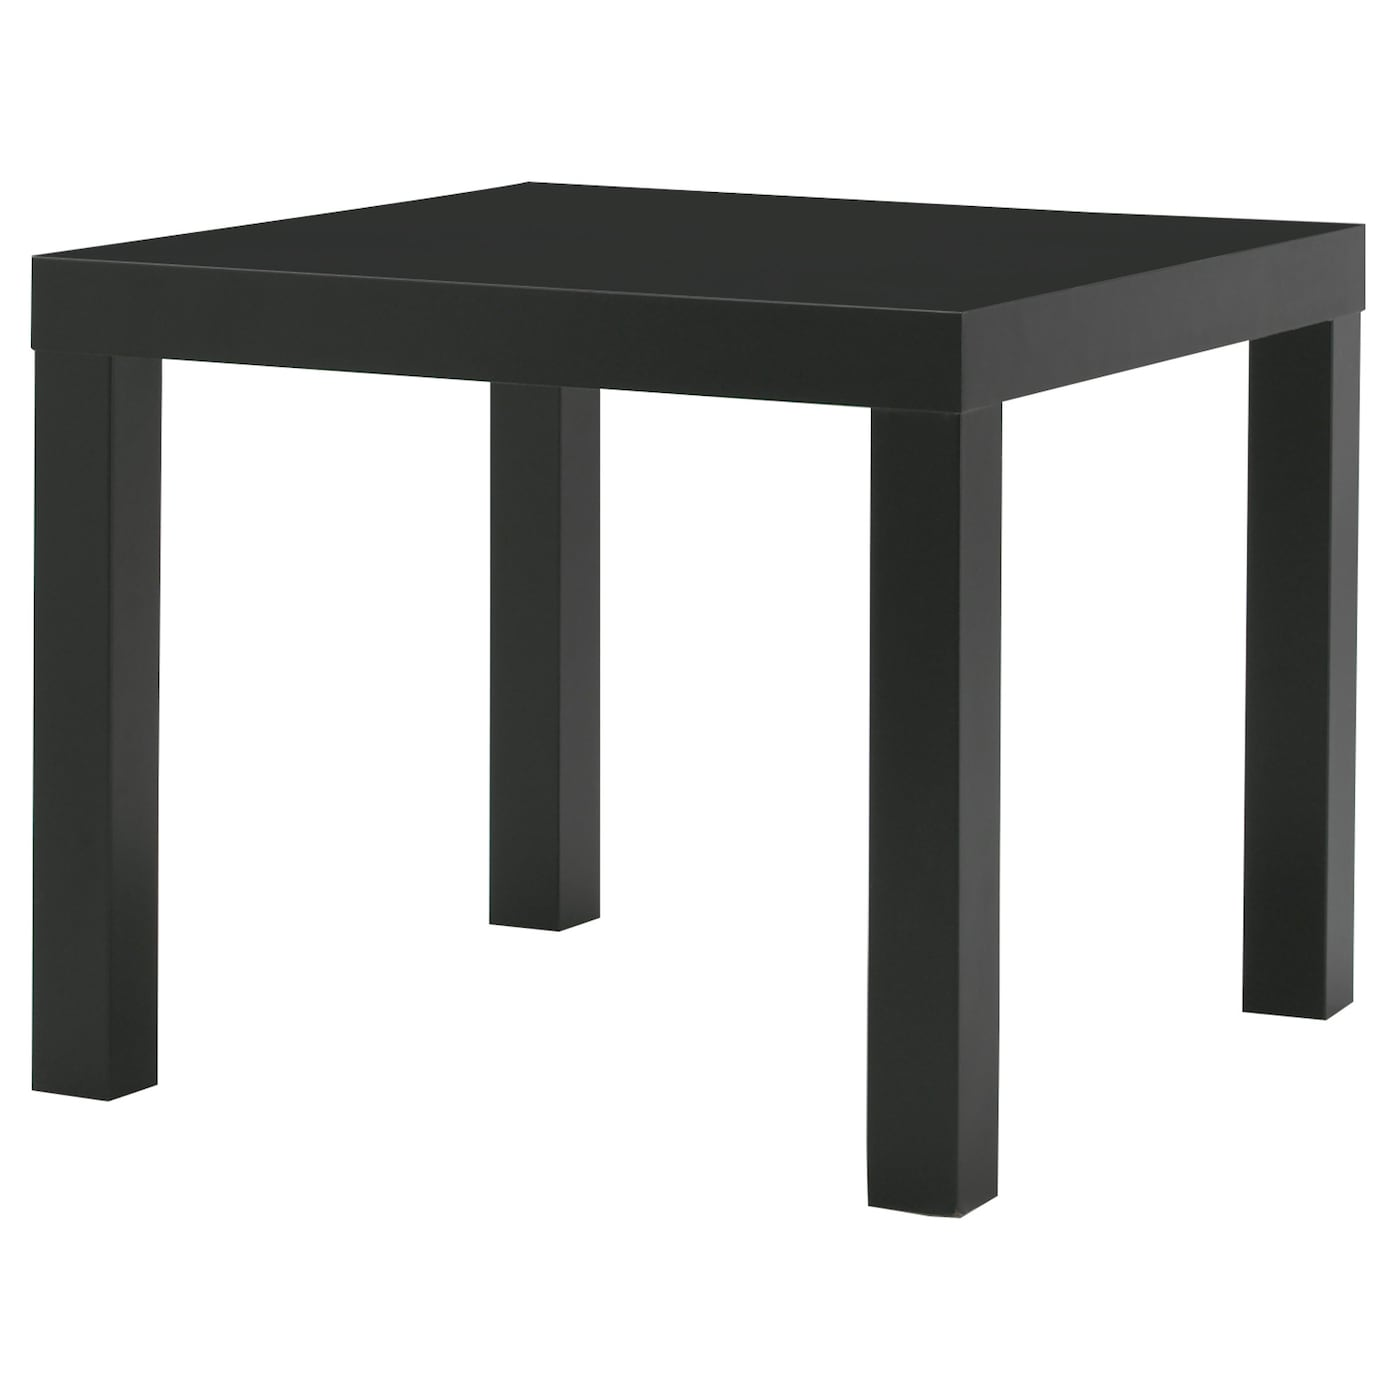 lack side table black 55 x 55 cm ikea. Black Bedroom Furniture Sets. Home Design Ideas